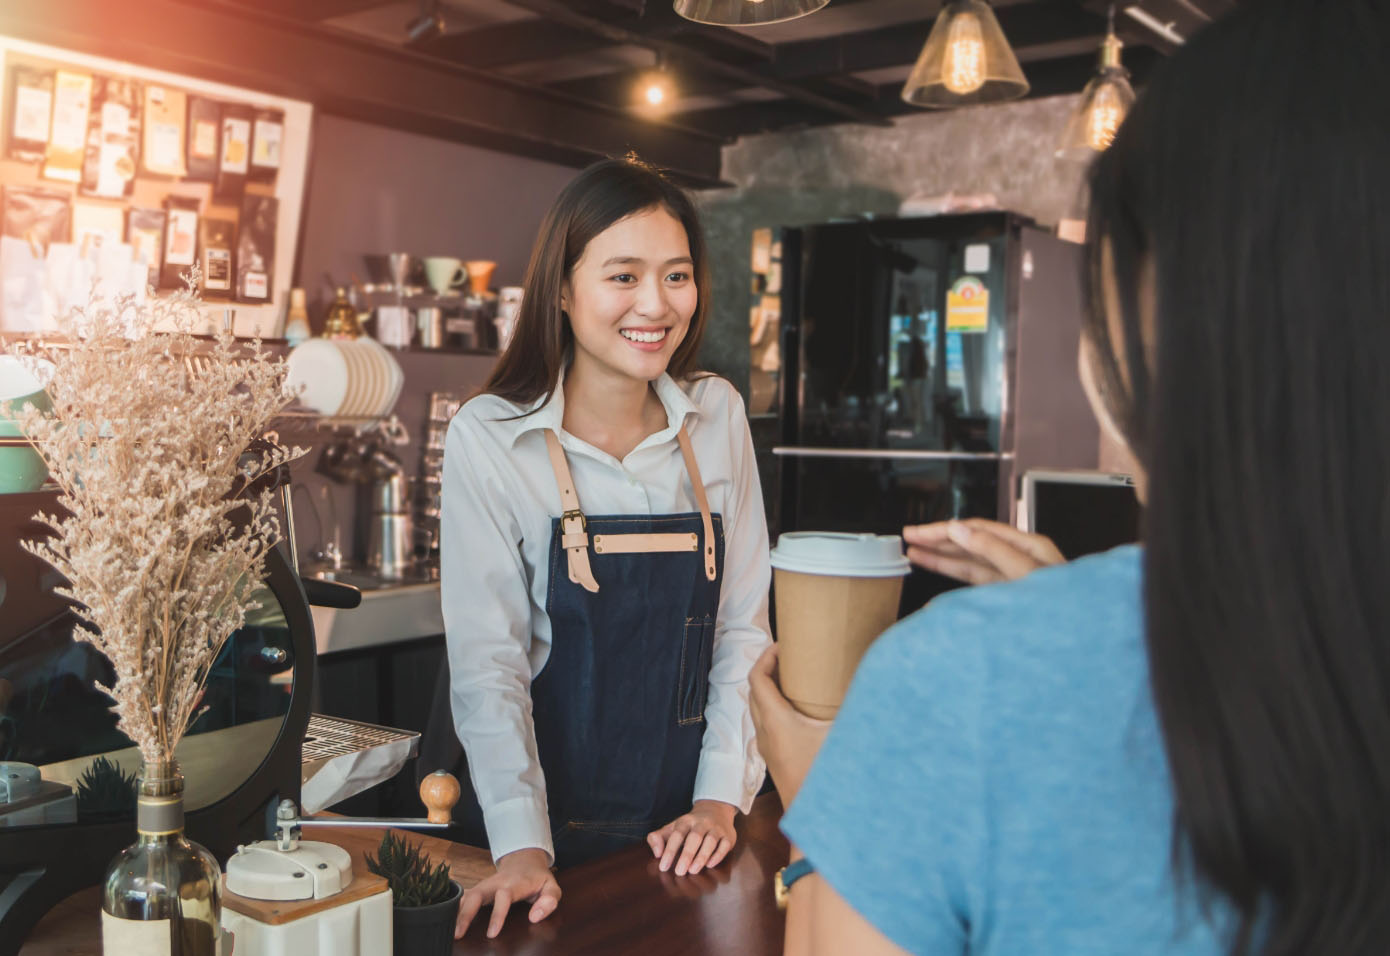 A barista smiling and conversing with a customer